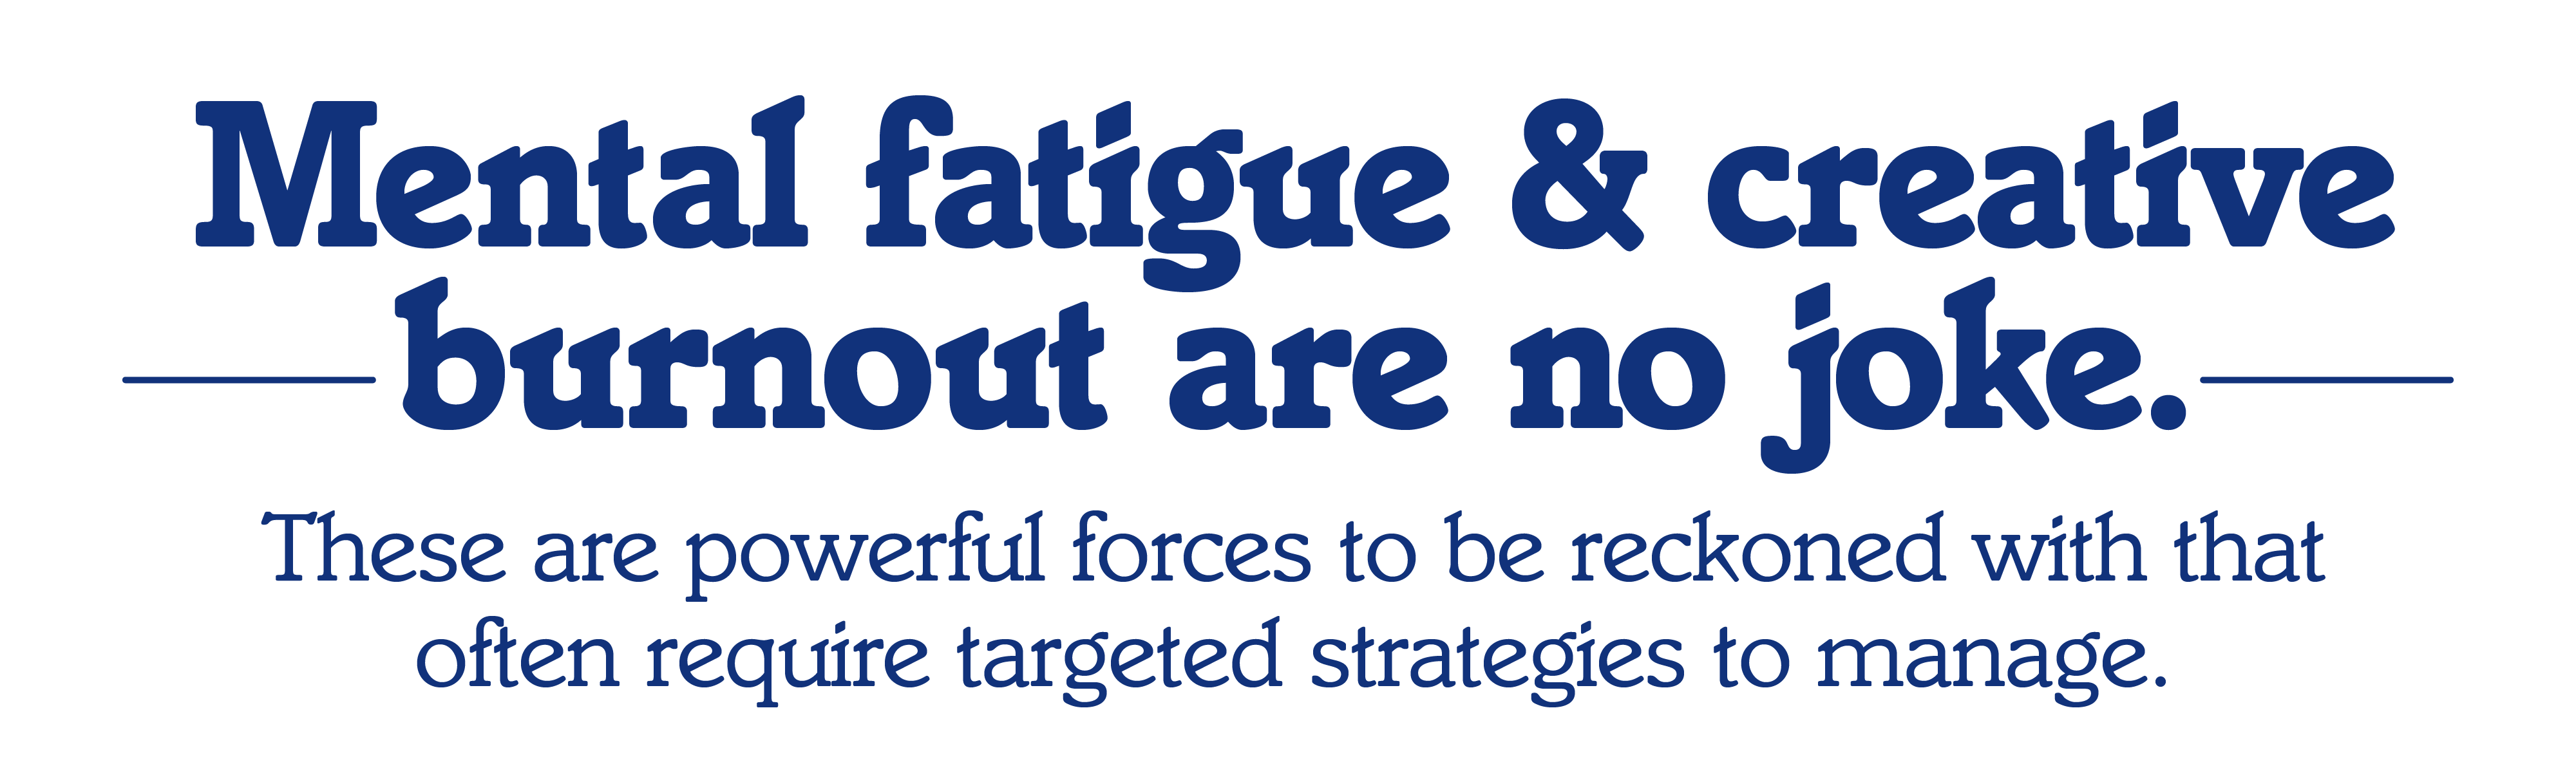 Mental Fatigue is No Joke—these are powerful forces that require targeted strategies to manage The Creative Performer